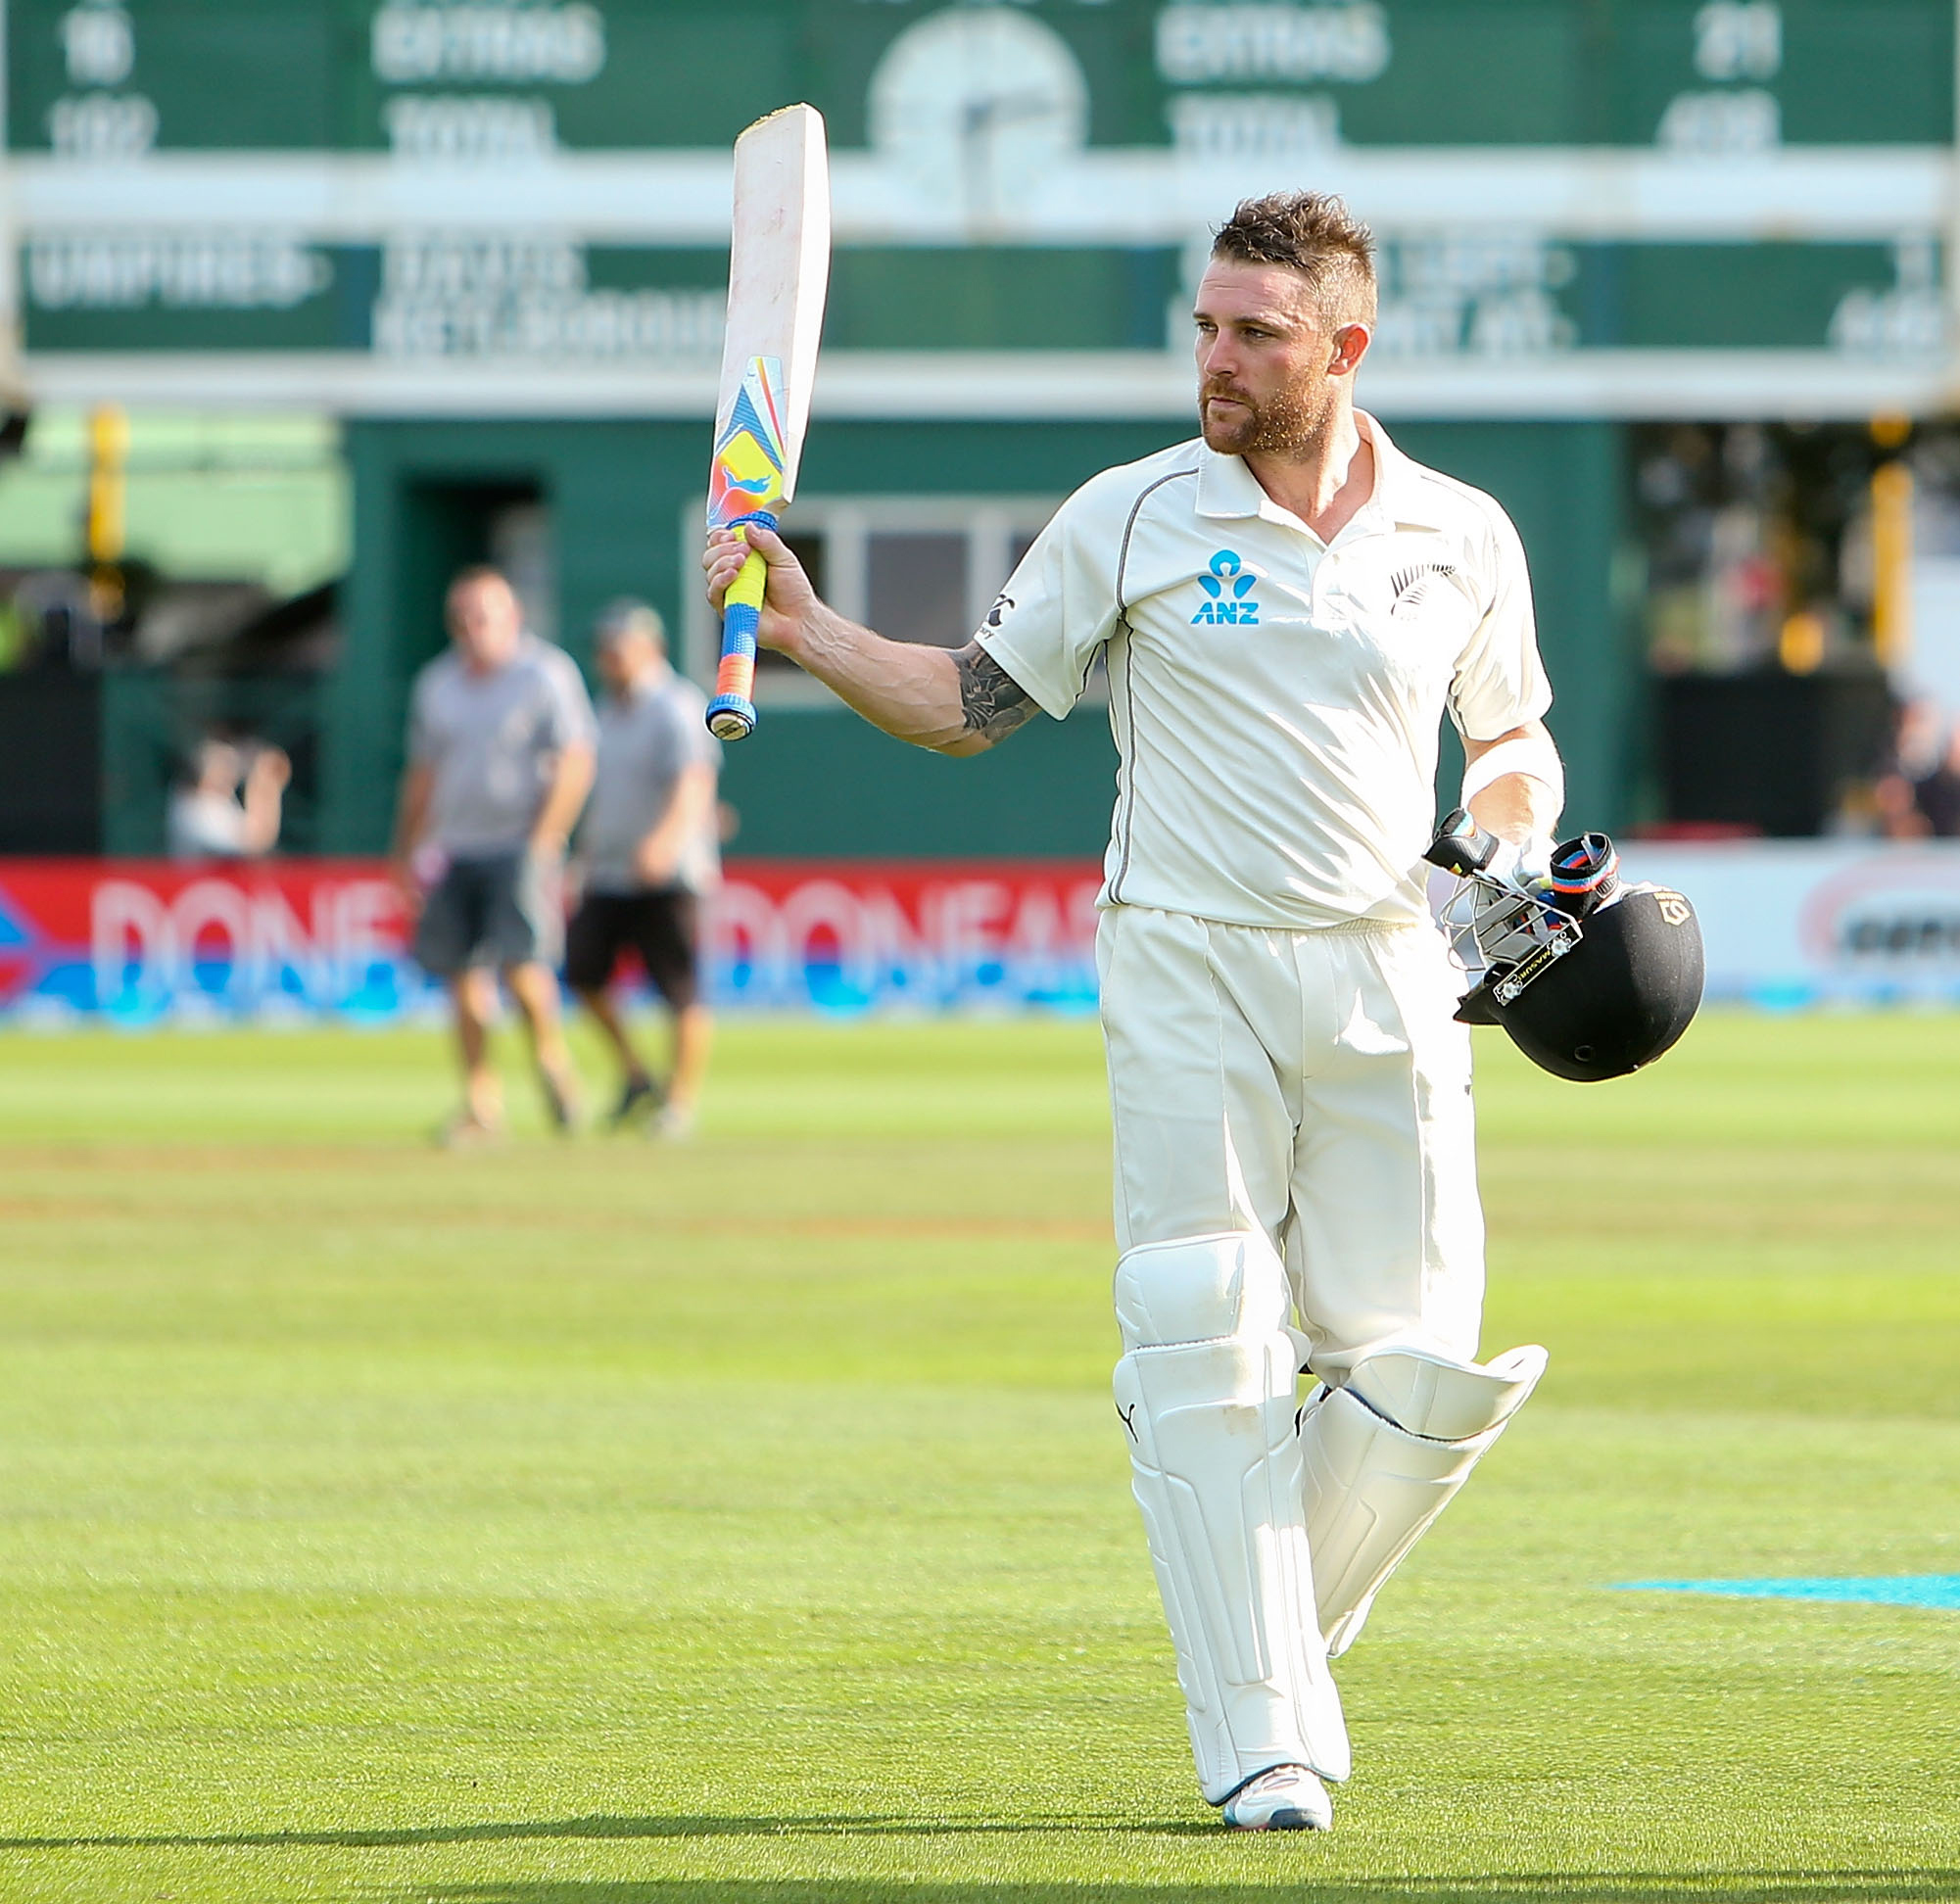 McCullum walks off unbeaten on 281 at stumps on day four // Getty